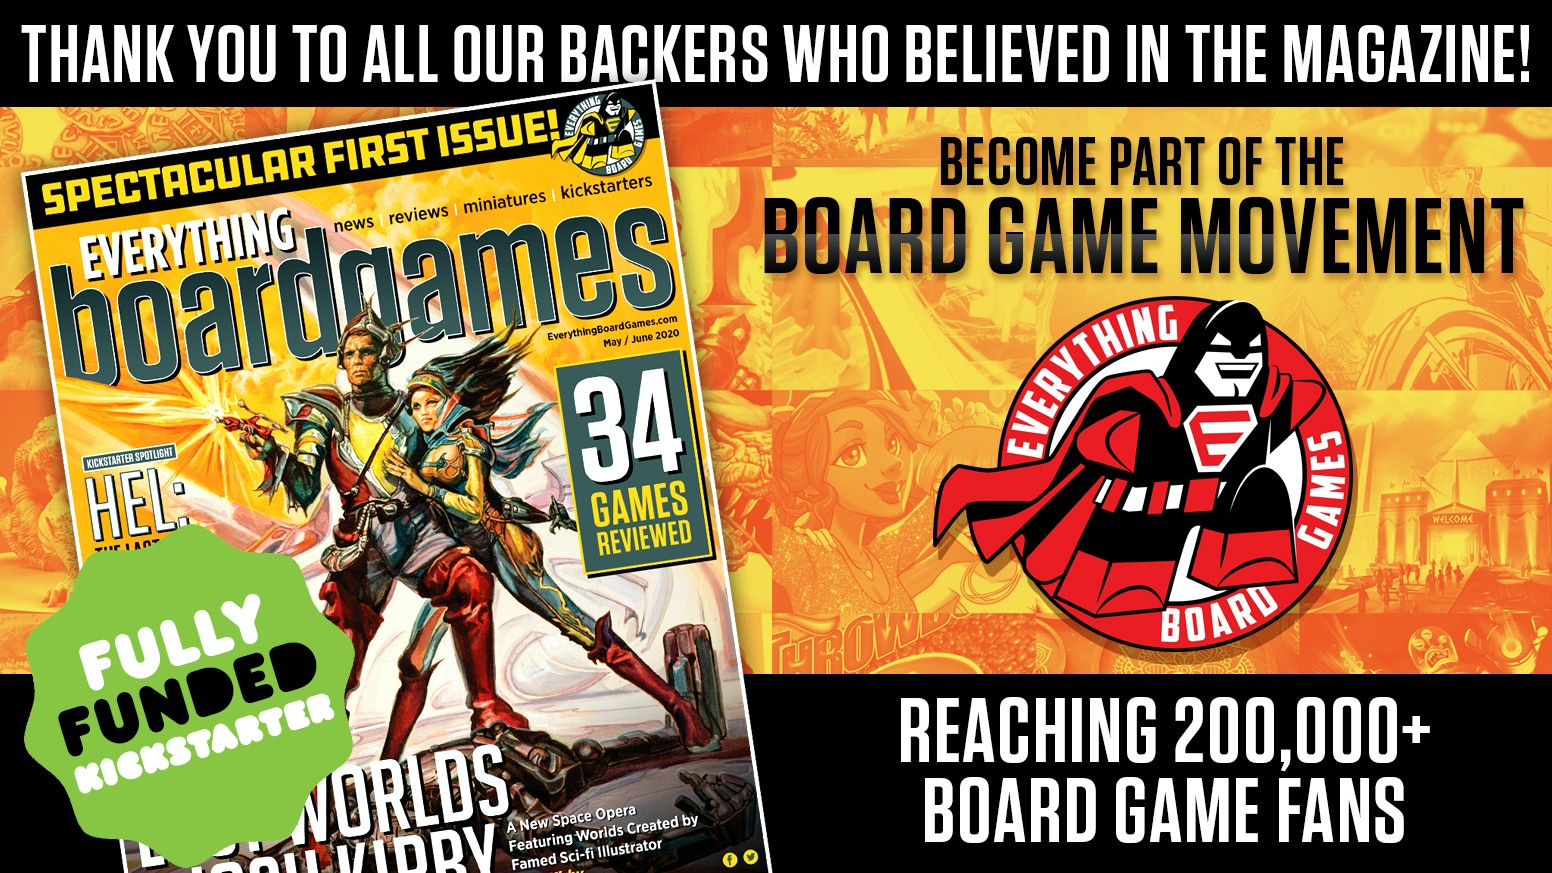 Help us make a New Magazine, All About: Board Game Reviews, News, Interviews, Stories & PnP Games & More!